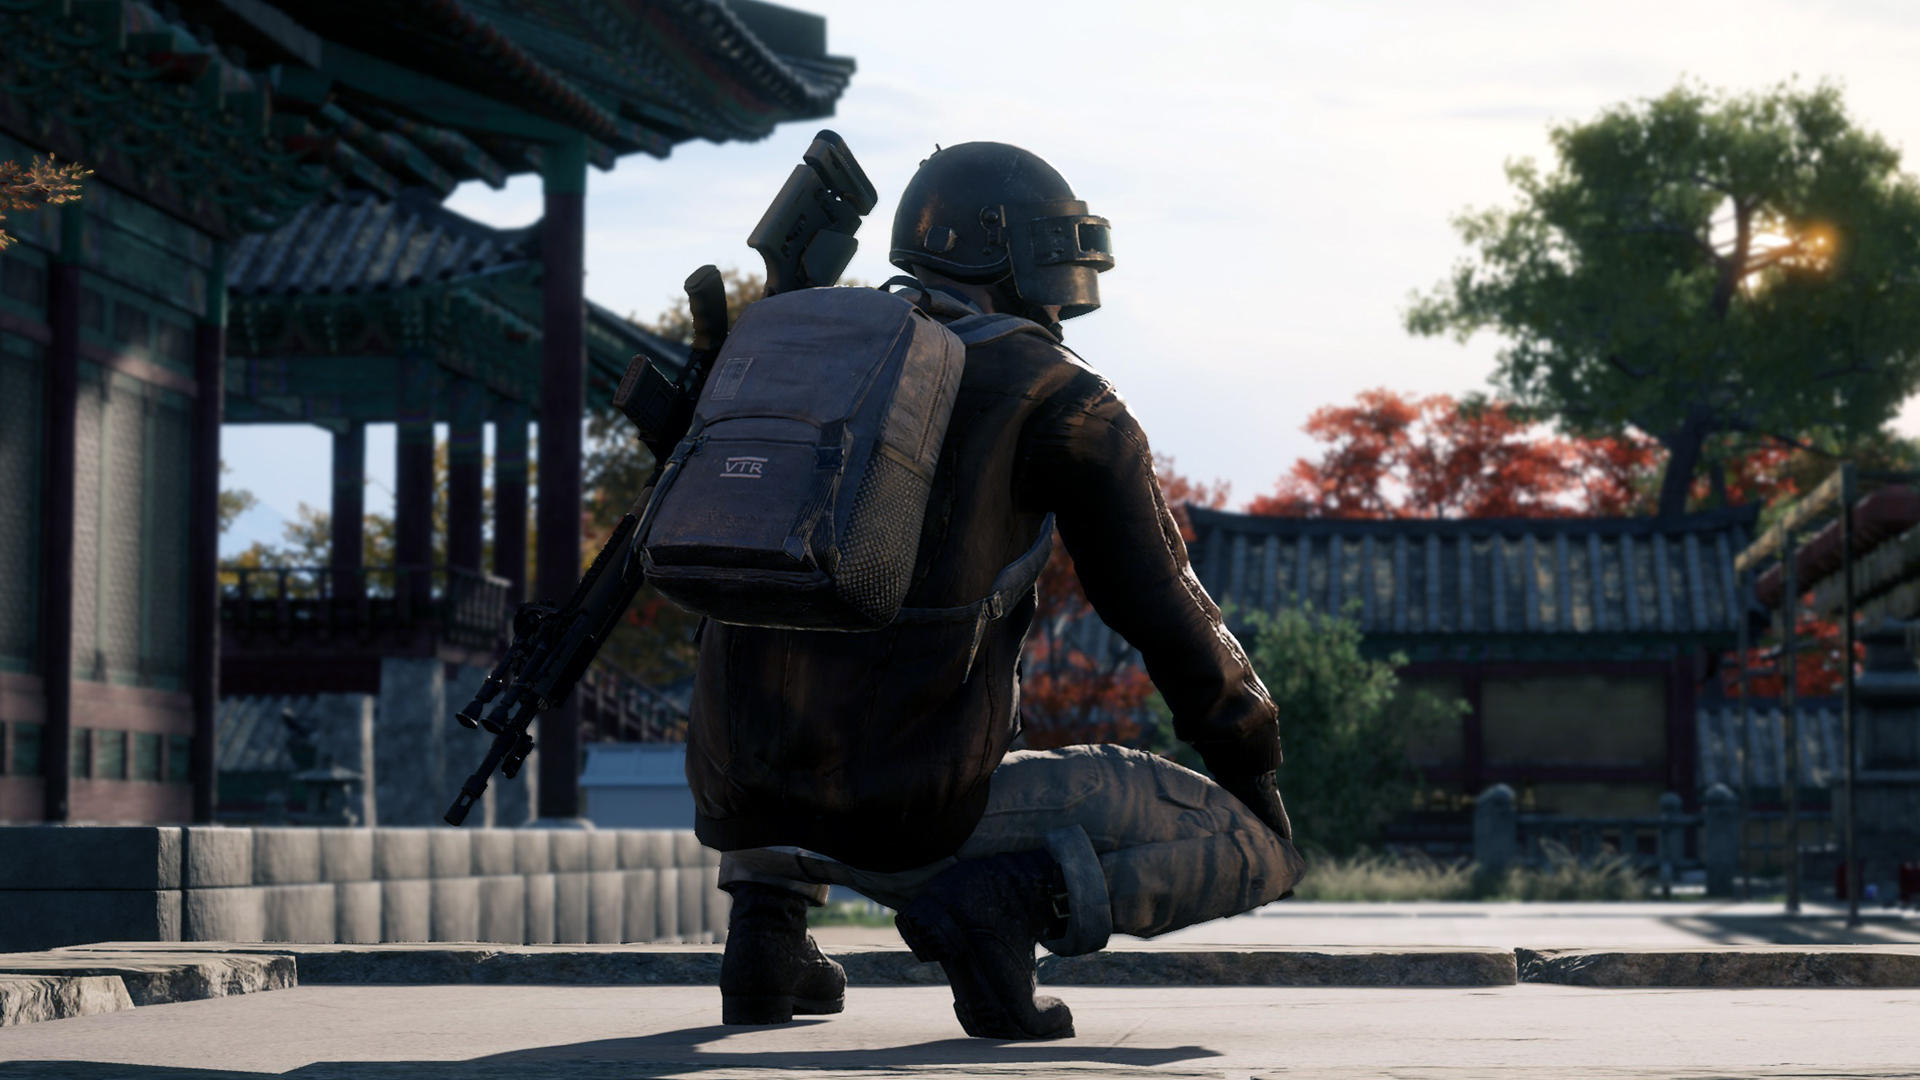 PUBG Taego release times confirmed – here's when the new map goes live